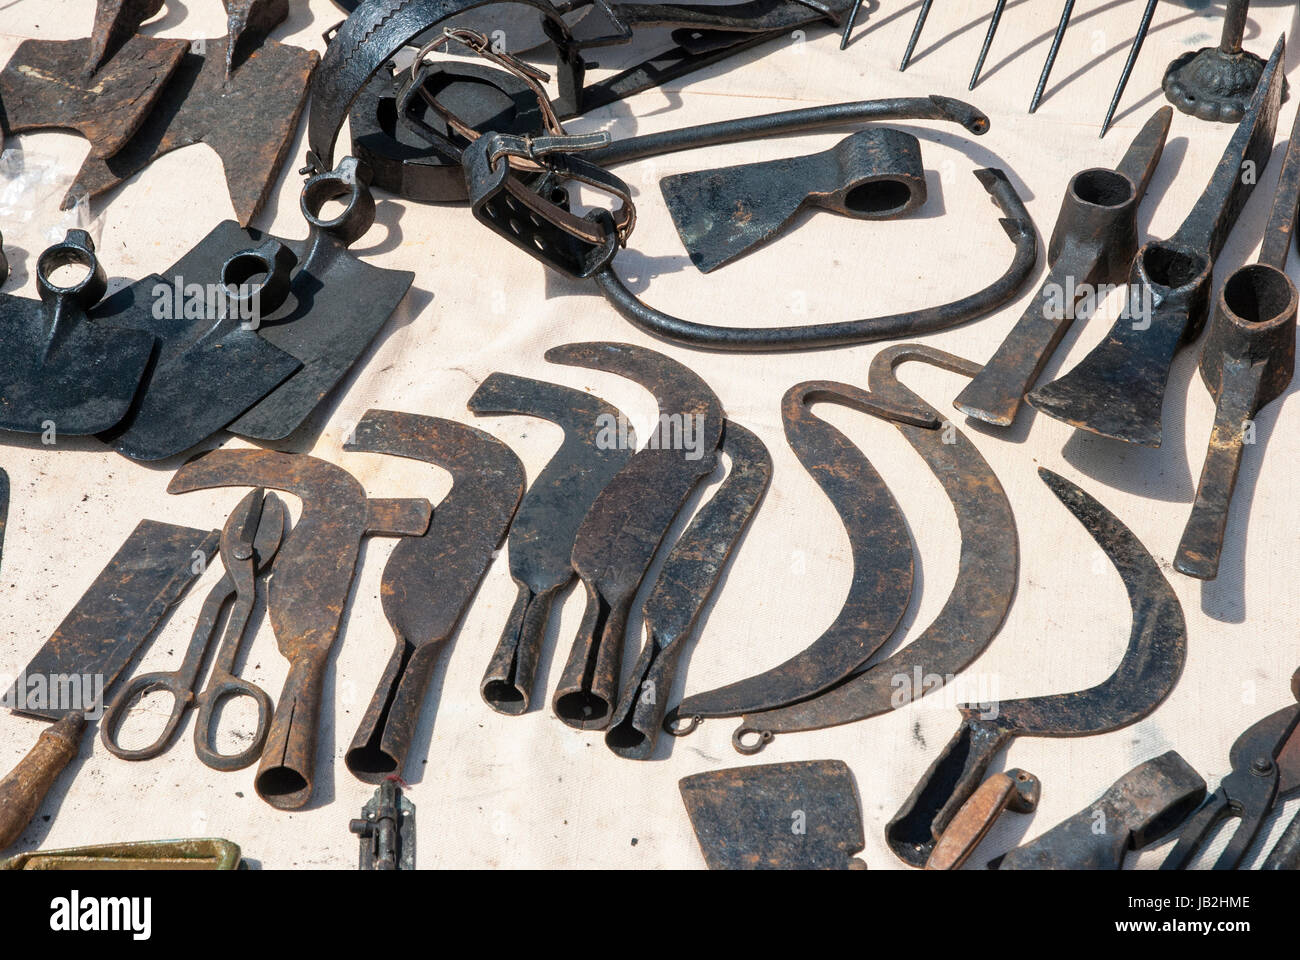 Various rusted vintage metal tools - hammer, pliers, chisels Stock Photo